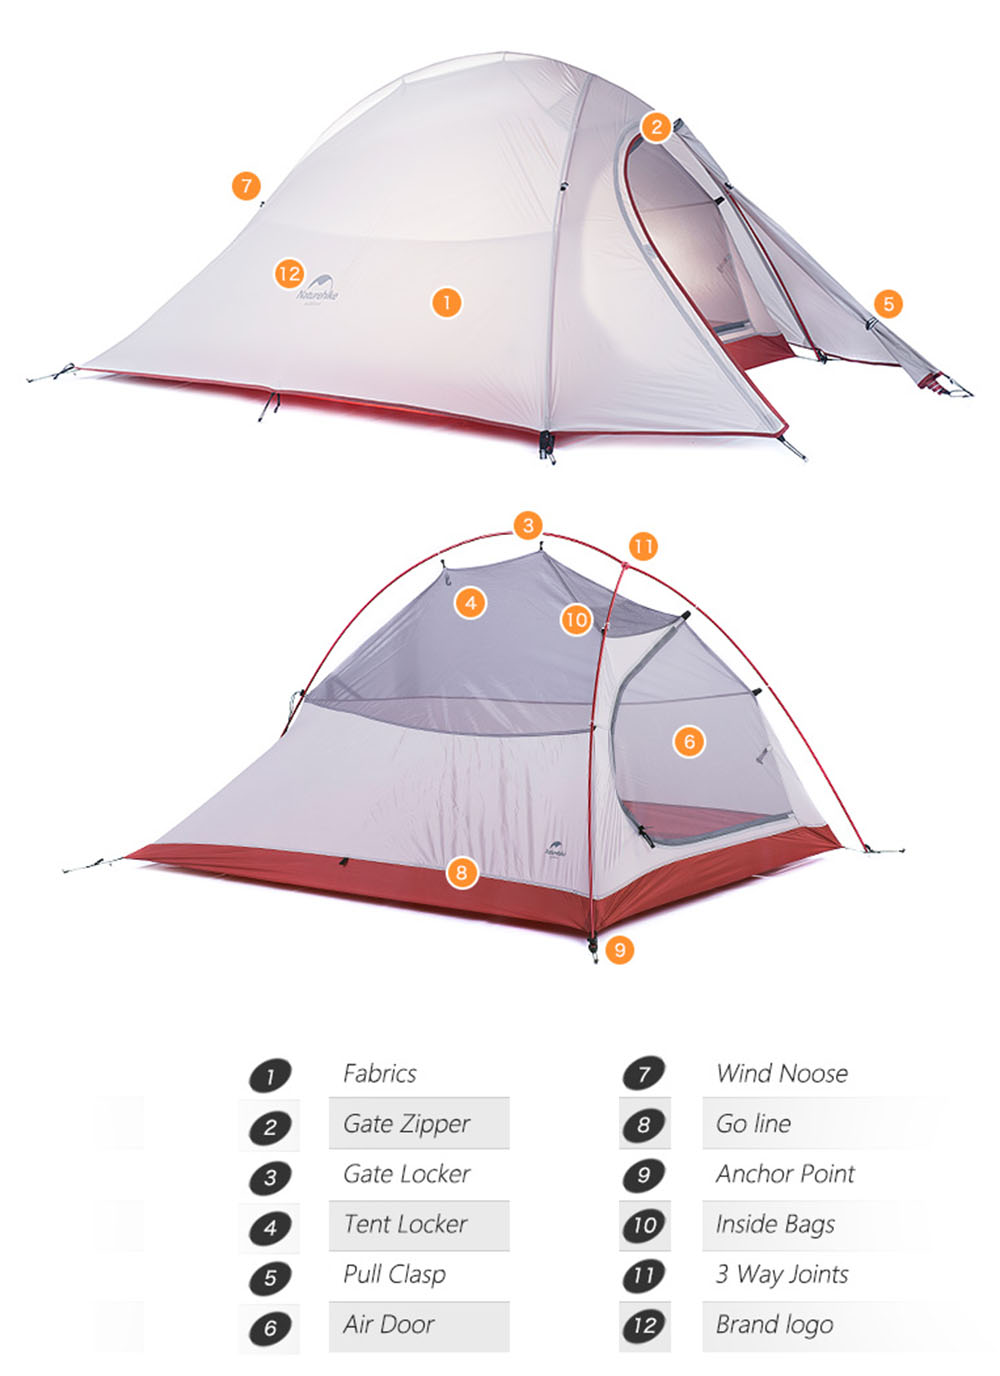 2 Person Outdoor Lightweight Camping Tent Kit Double Layer Soft Silicone Anti-pest with Carry Bag for Travel Hunting Hiking